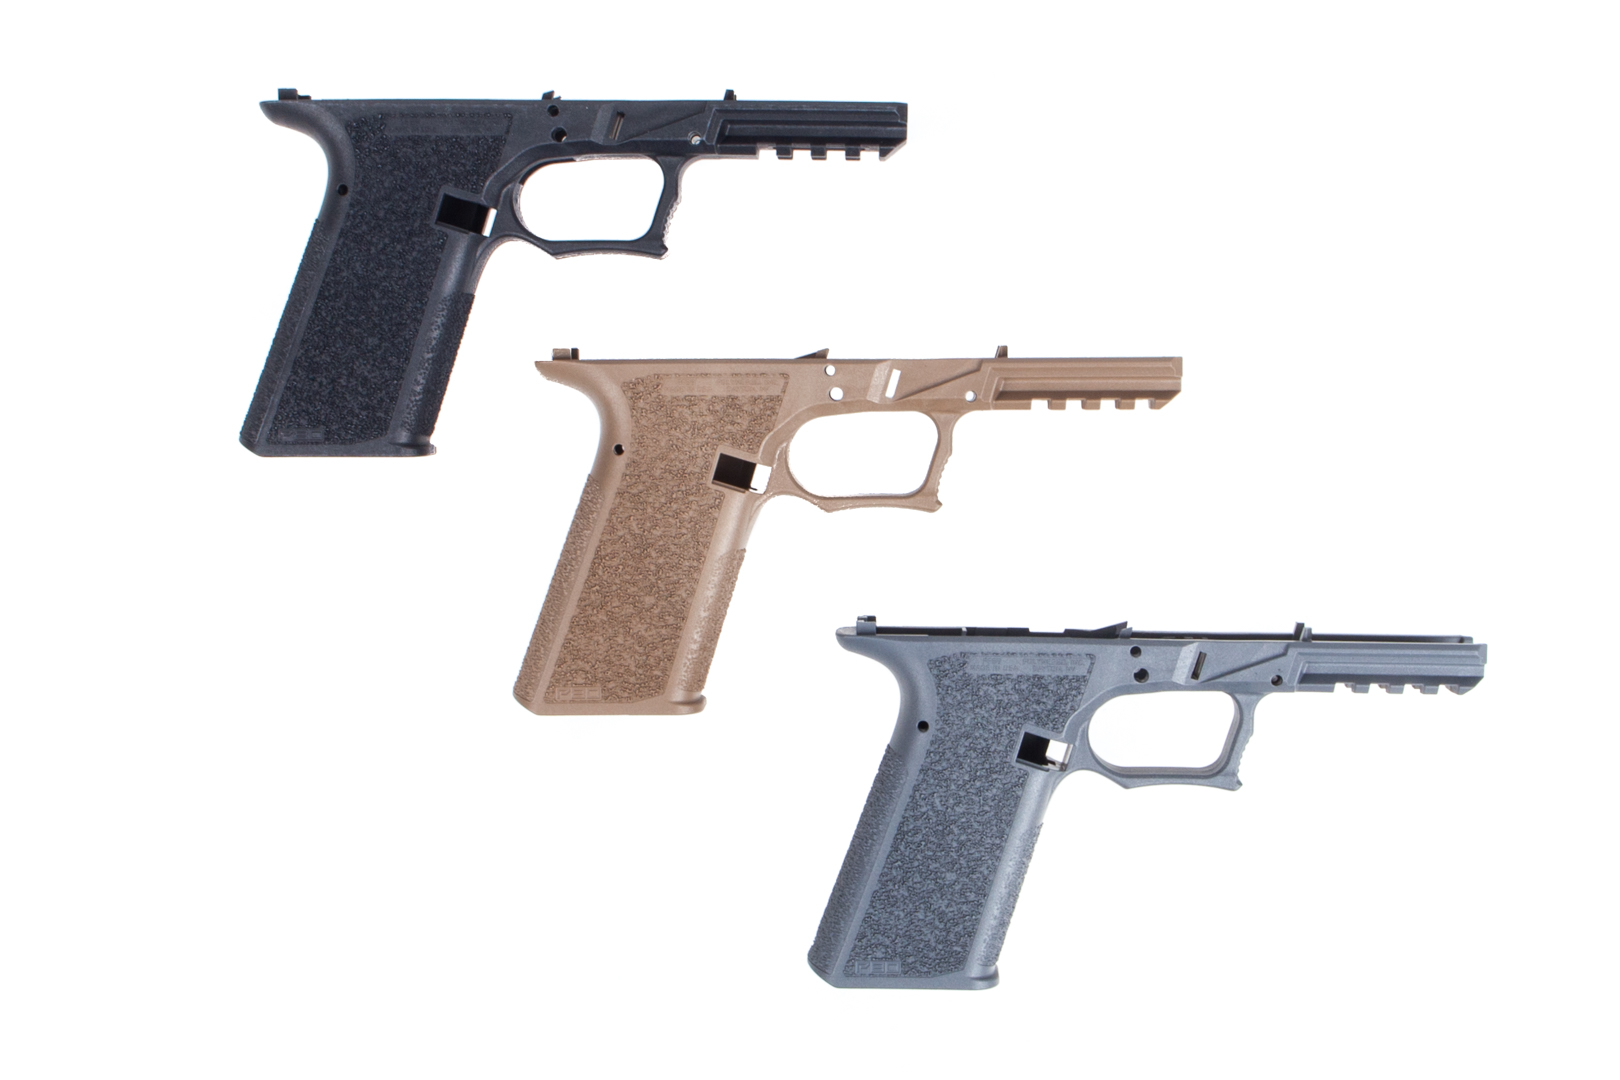 Polymer80 PFC9 Serialized Glock 19/23 Pistol Compact Frame